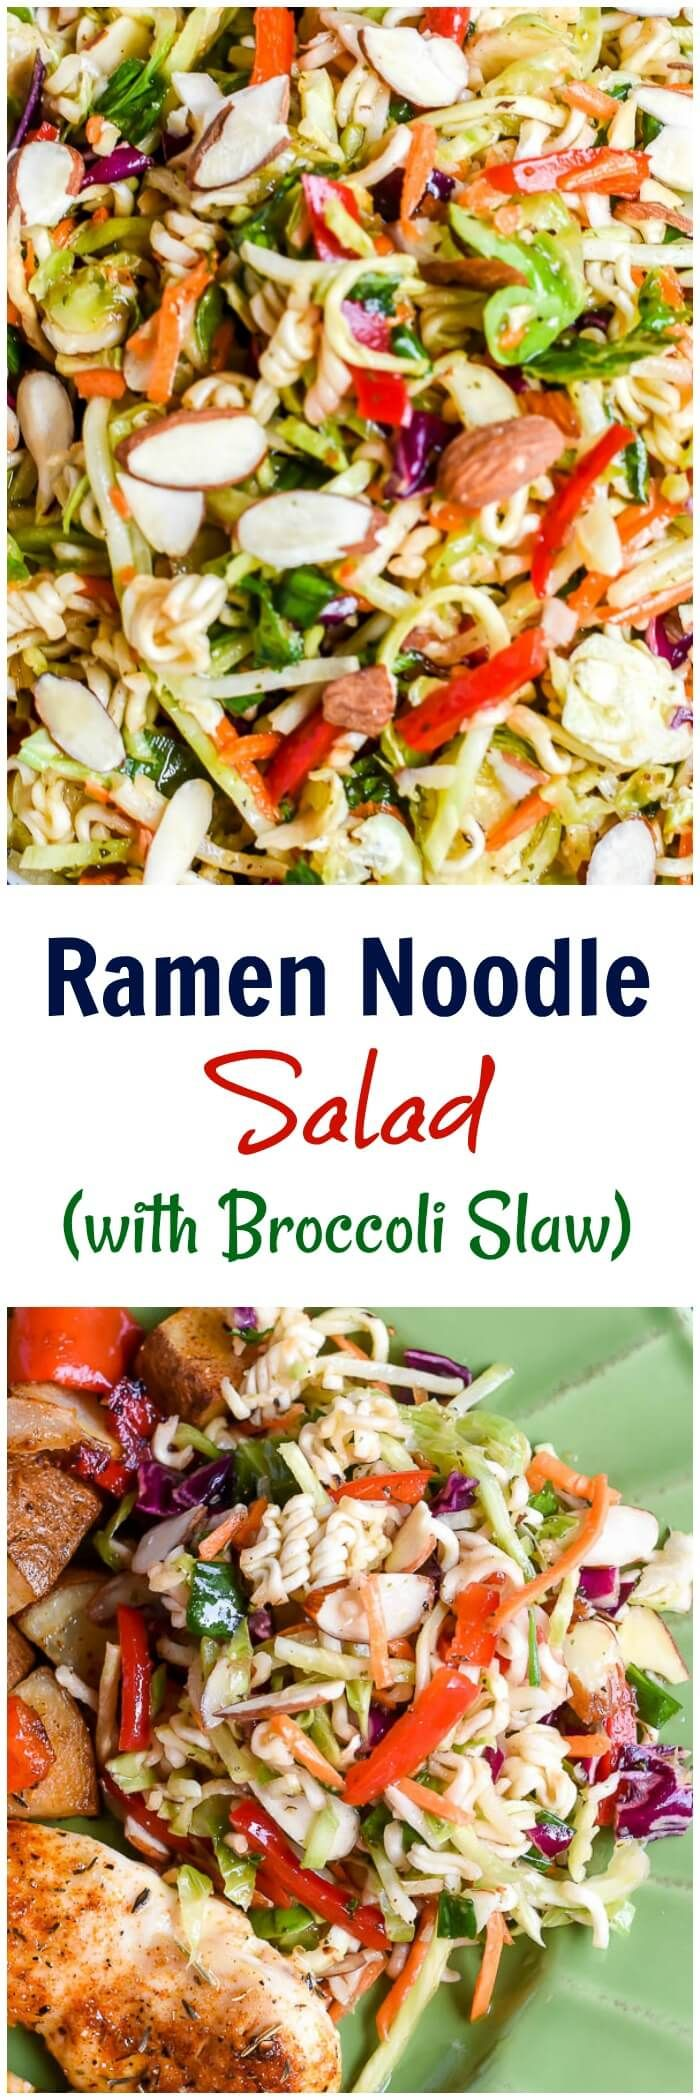 This Ramen Noodle Salad is a make ahead cole slaw, made with broccoli slaw and ramen noodles, that is perfect for a side dish for a potluck, bbq, or picnic. via @flavormosaic